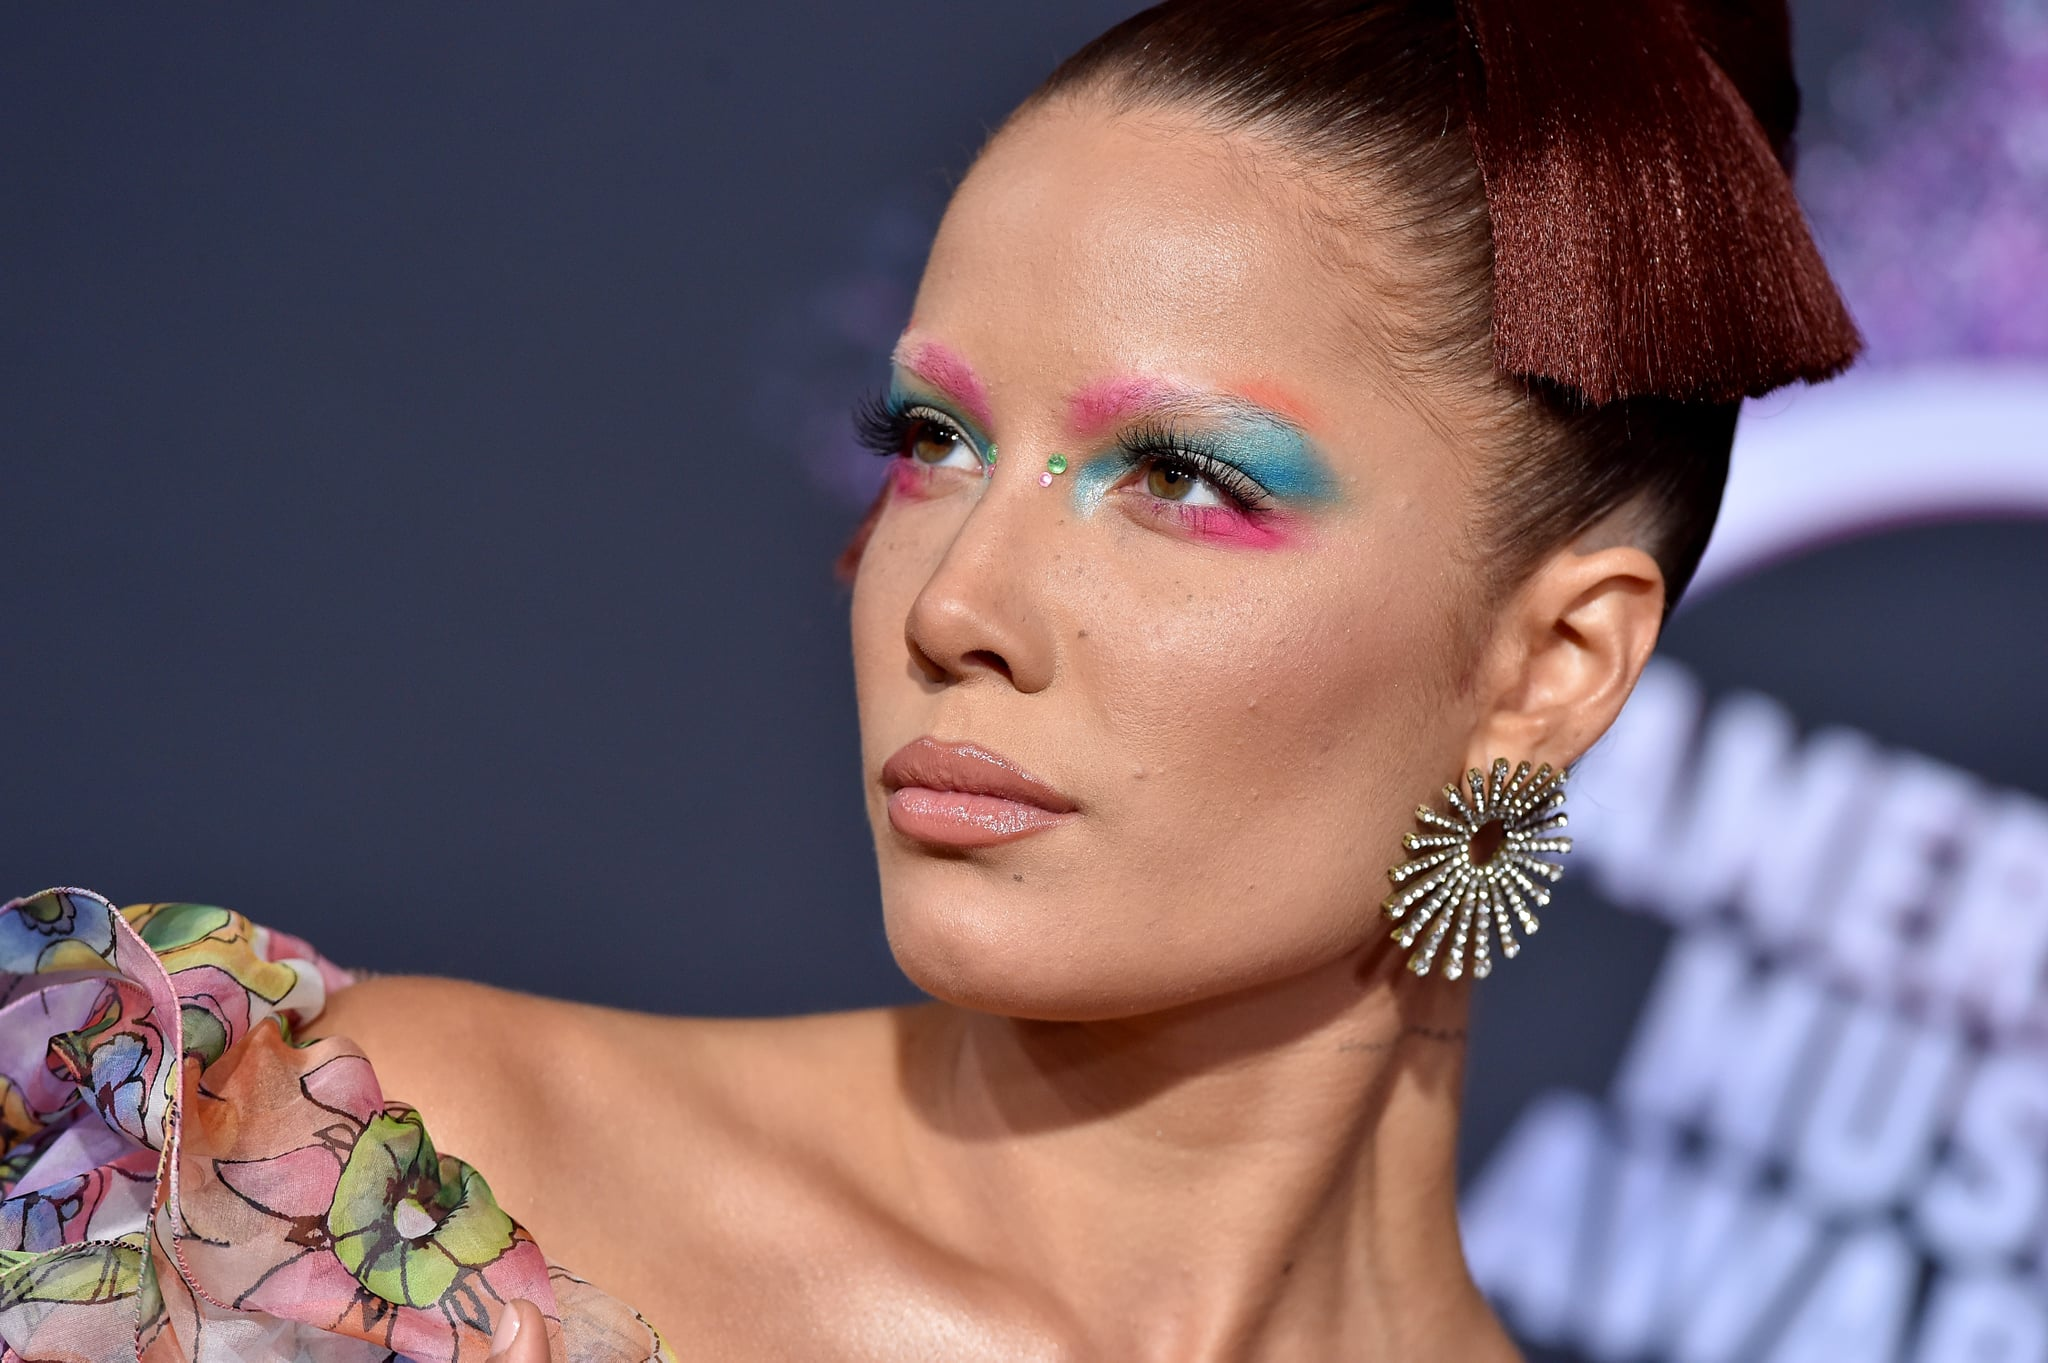 LOS ANGELES, CALIFORNIA - NOVEMBER 24: Halsey attends the 2019 American Music Awards at Microsoft Theater on November 24, 2019 in Los Angeles, California. (Photo by Axelle/Bauer-Griffin/FilmMagic )